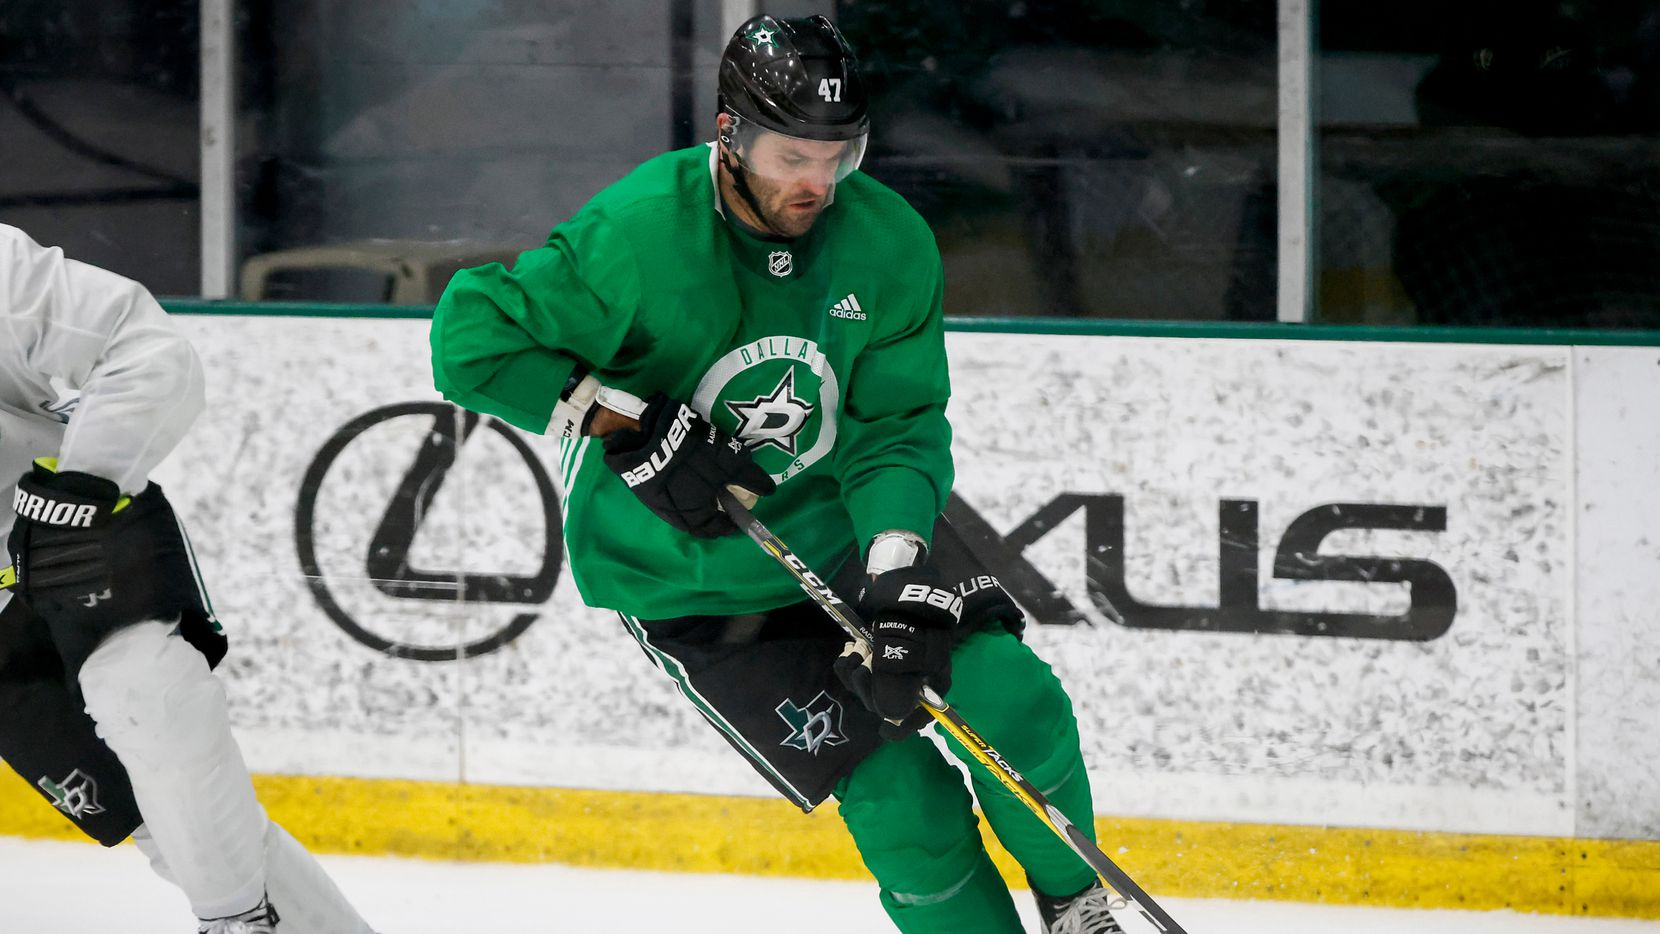 Dallas Stars right wing Alexander Radulov controls the puck during a training camp practice at the Comerica Center on Wednesday, Jan. 6, 2021, in Frisco.